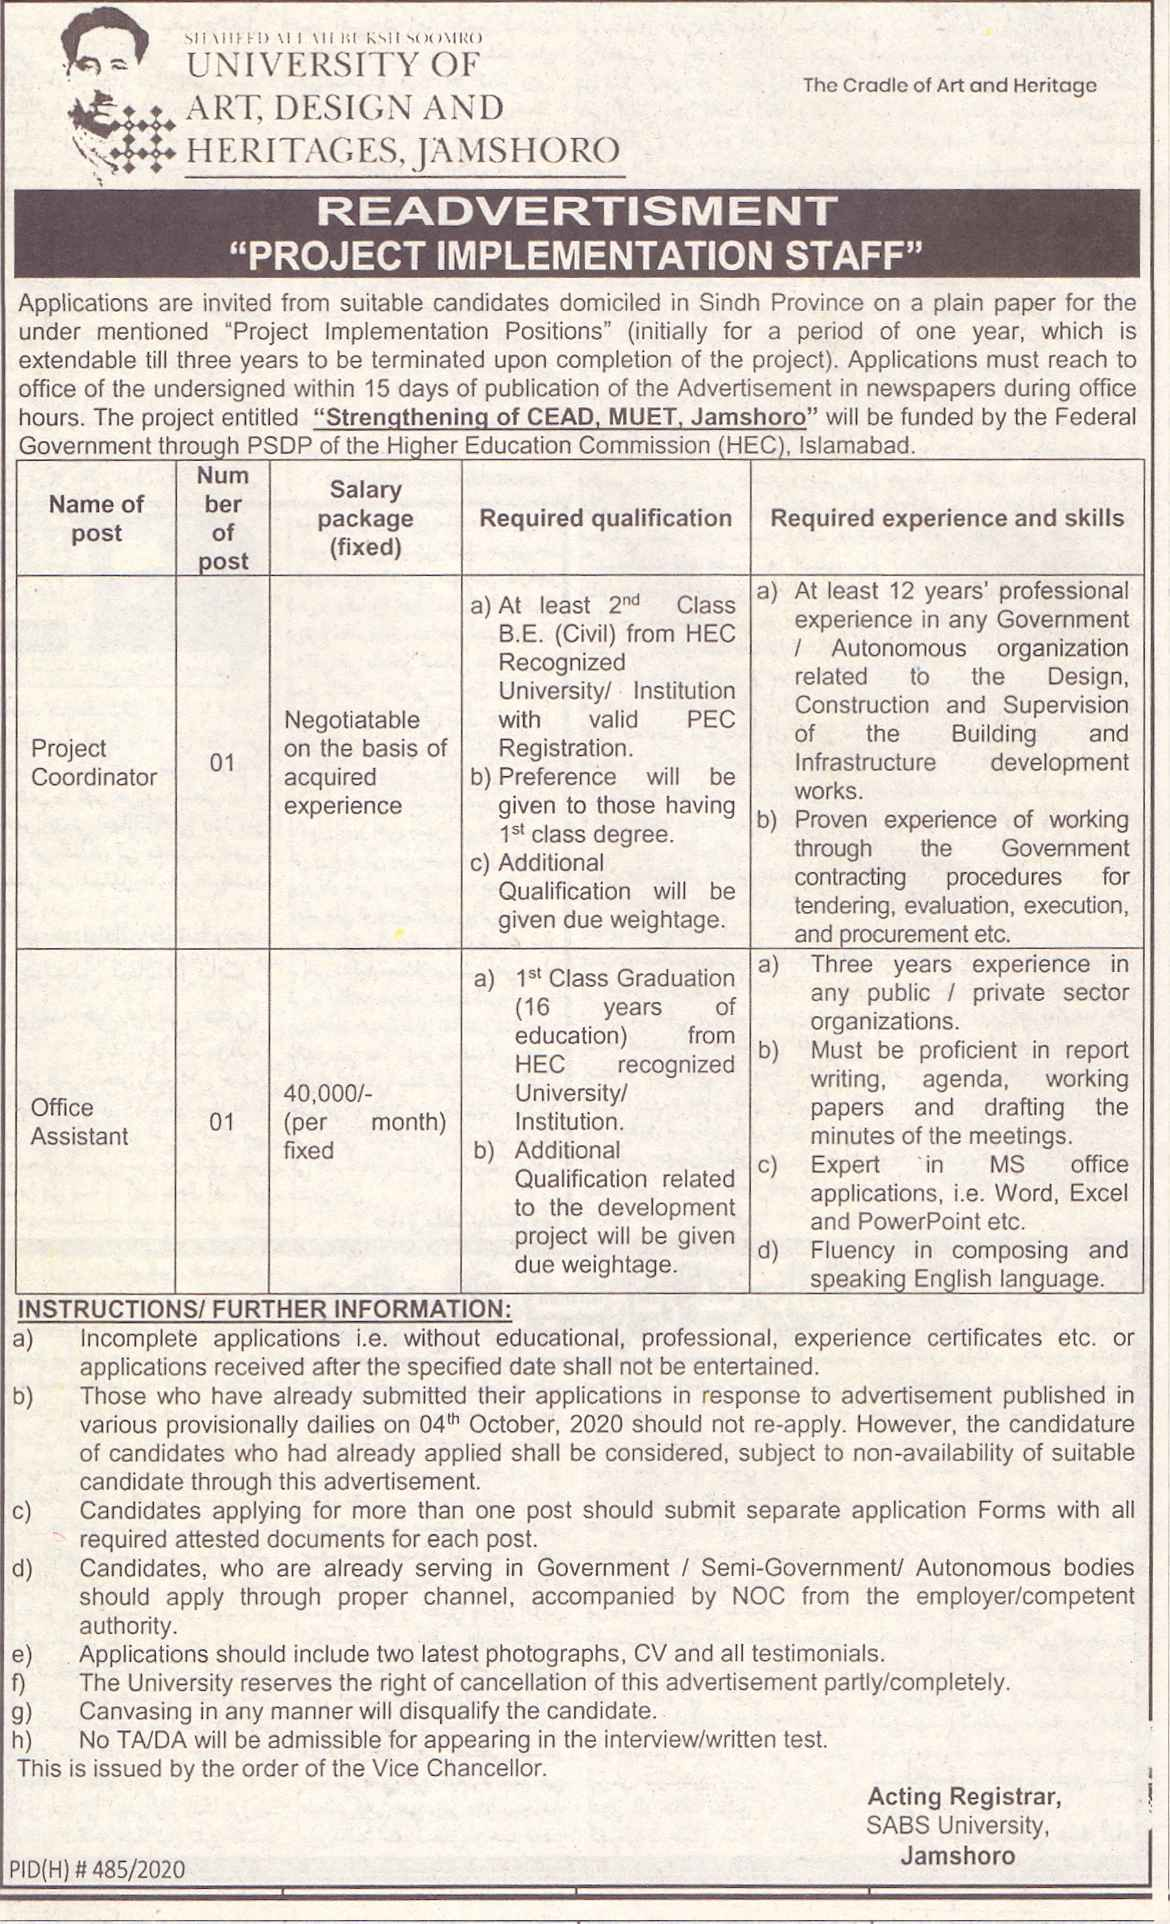 University of Art Design & Heritage Jamshoro Jobs 2021 for Project Coordinator, Office Assistant, Engineer and more